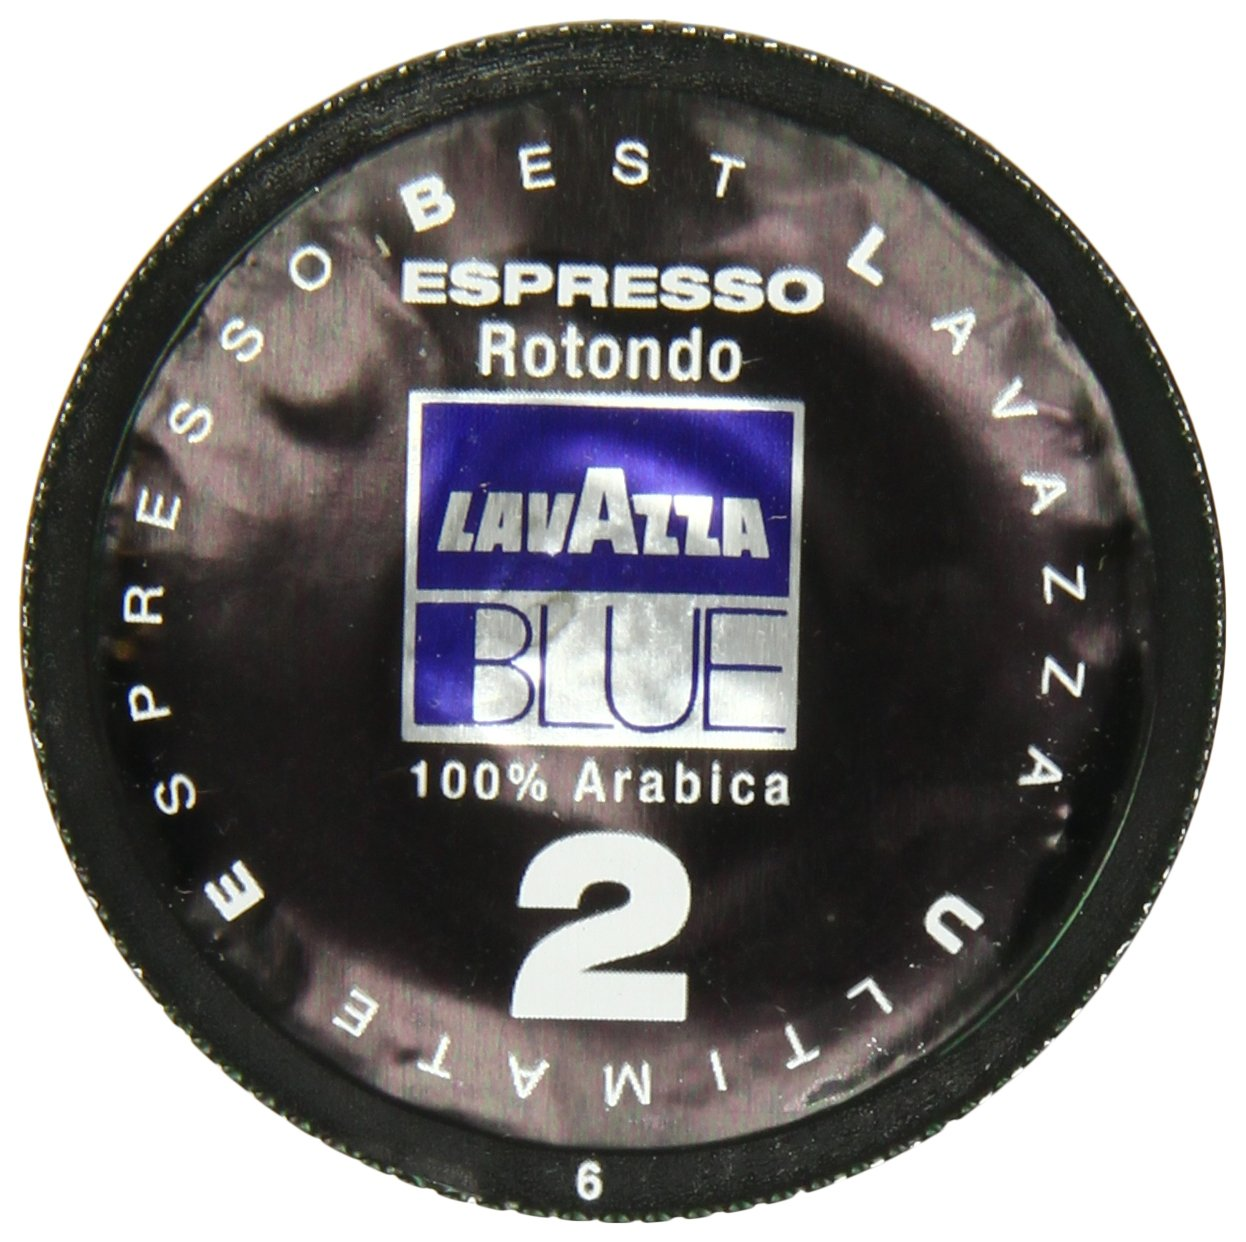 Lavazza BLUE Capsules, Espresso Rotondo 2 Coffee Blend, Dark Roast, 28.2-Ounce Boxes (Pack of 100) by Lavazza (Image #1)